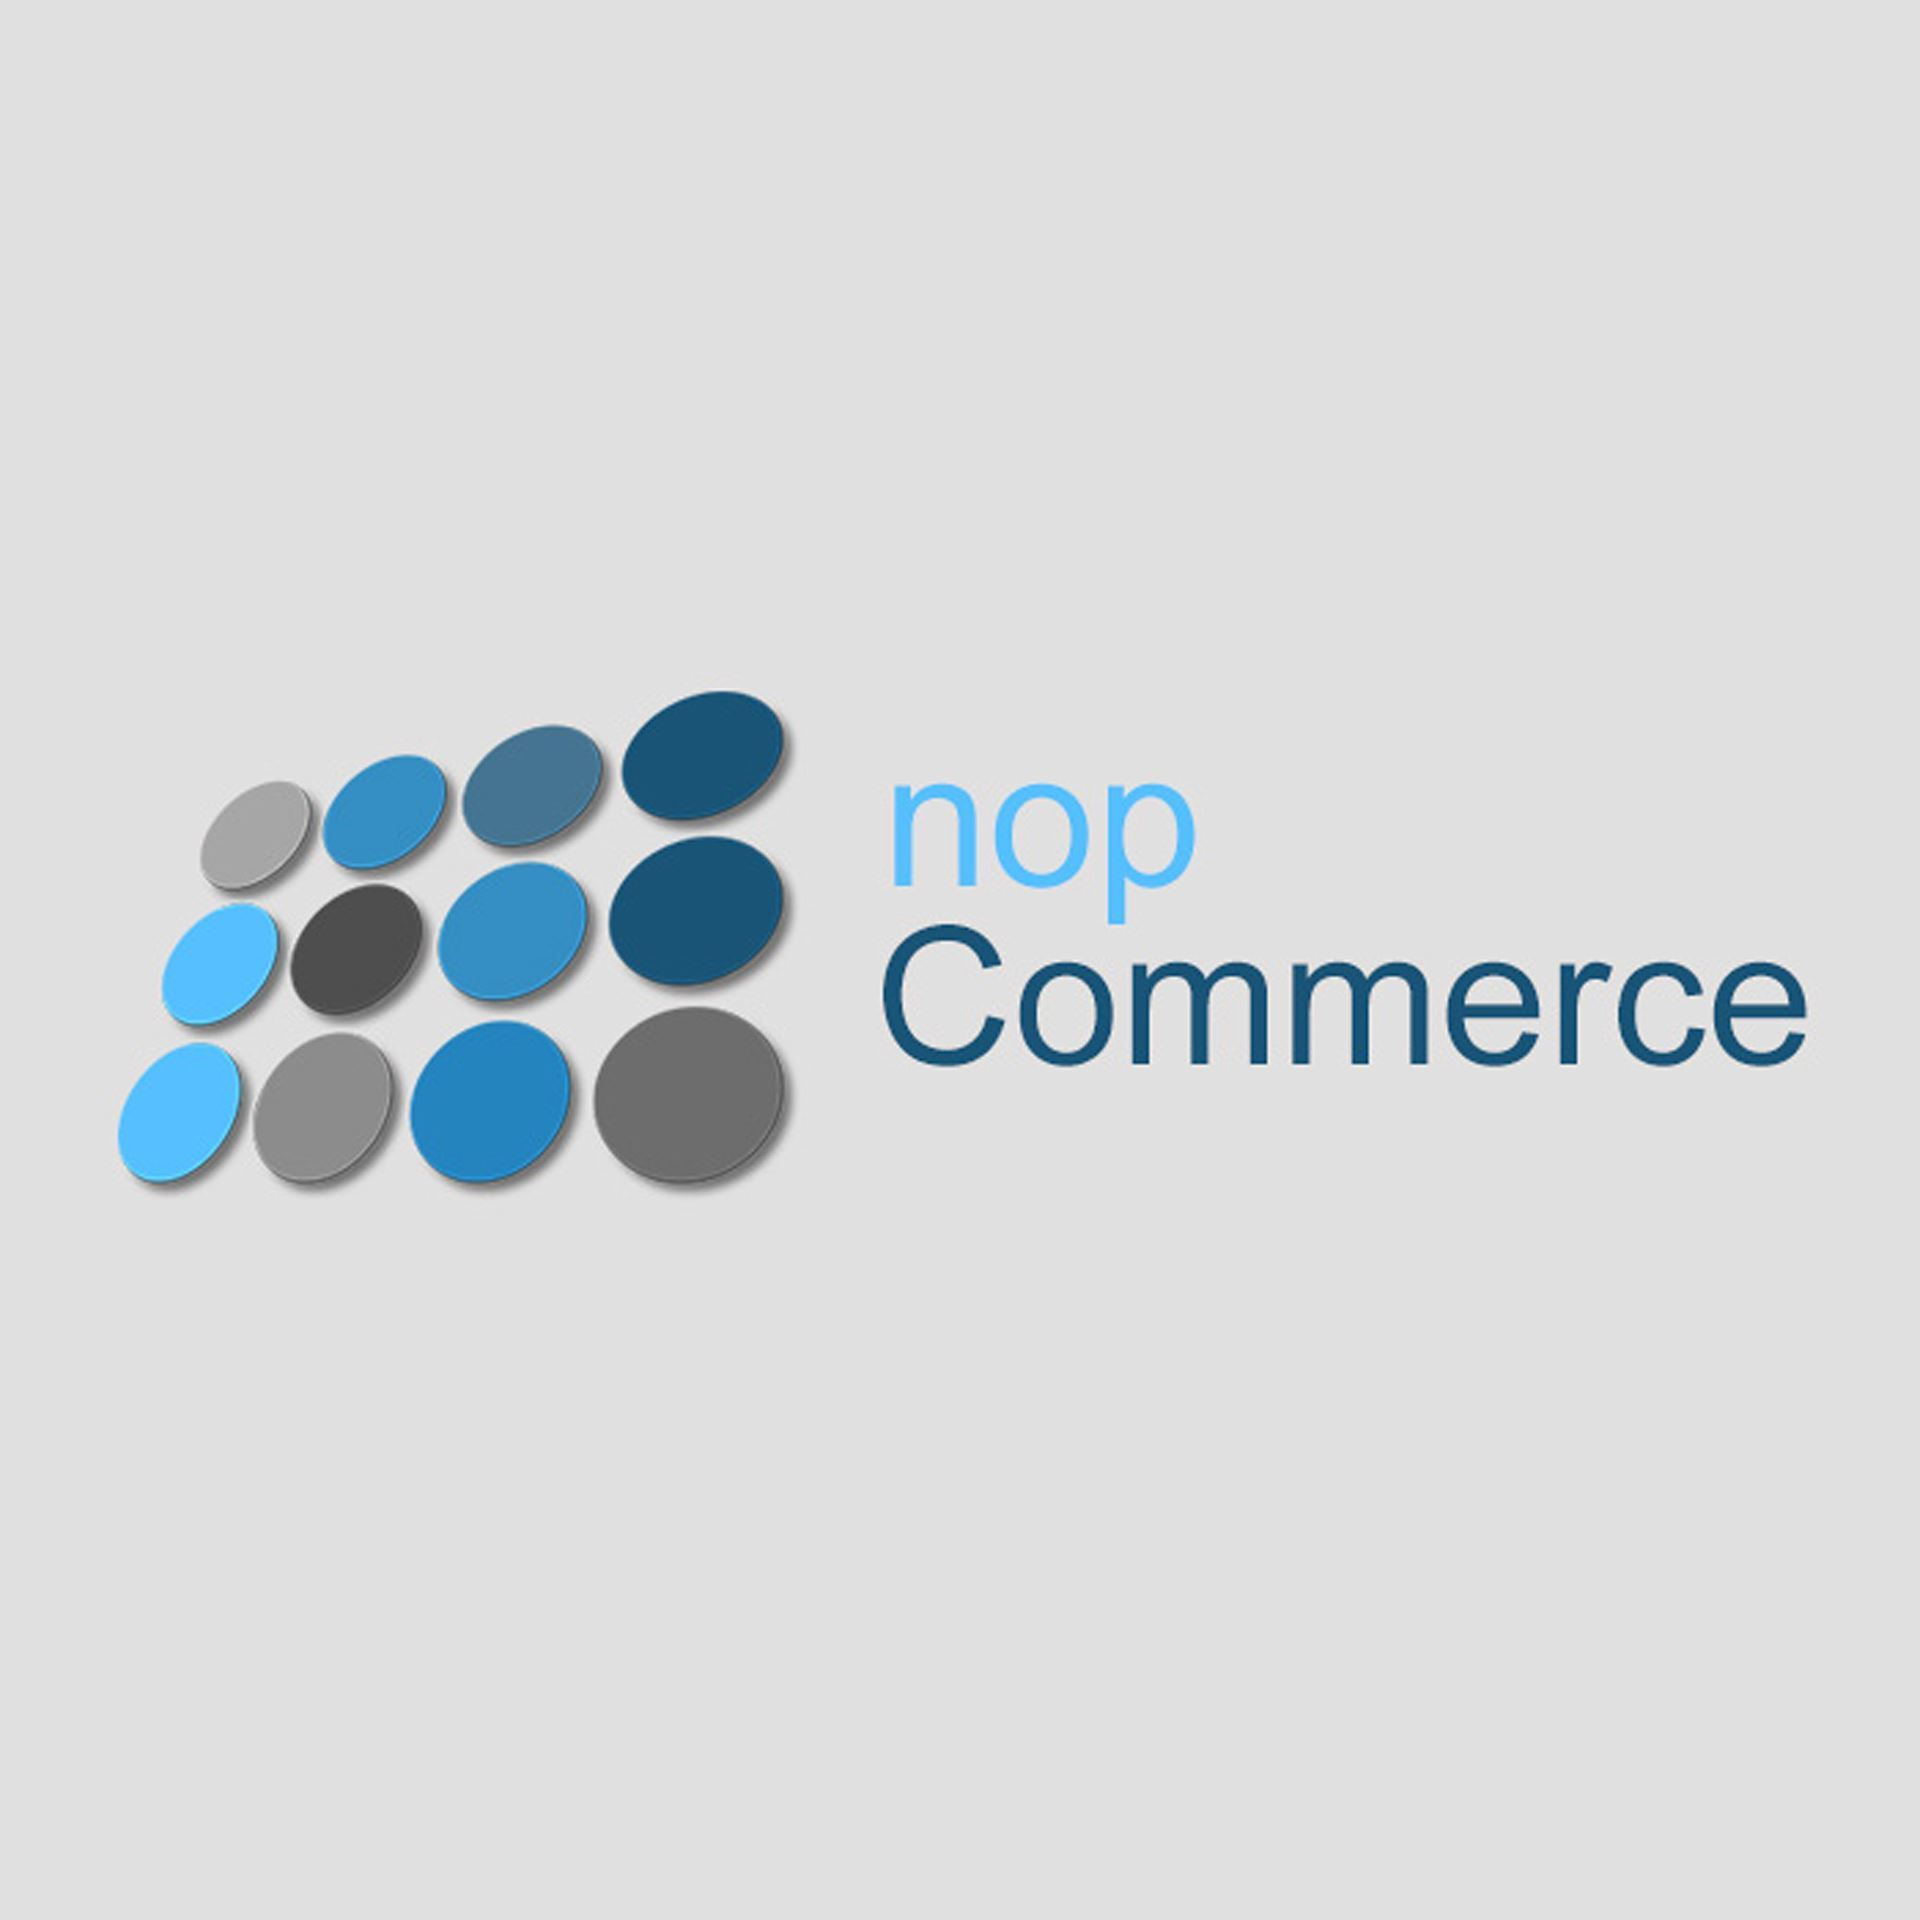 سیستم nop Commerce